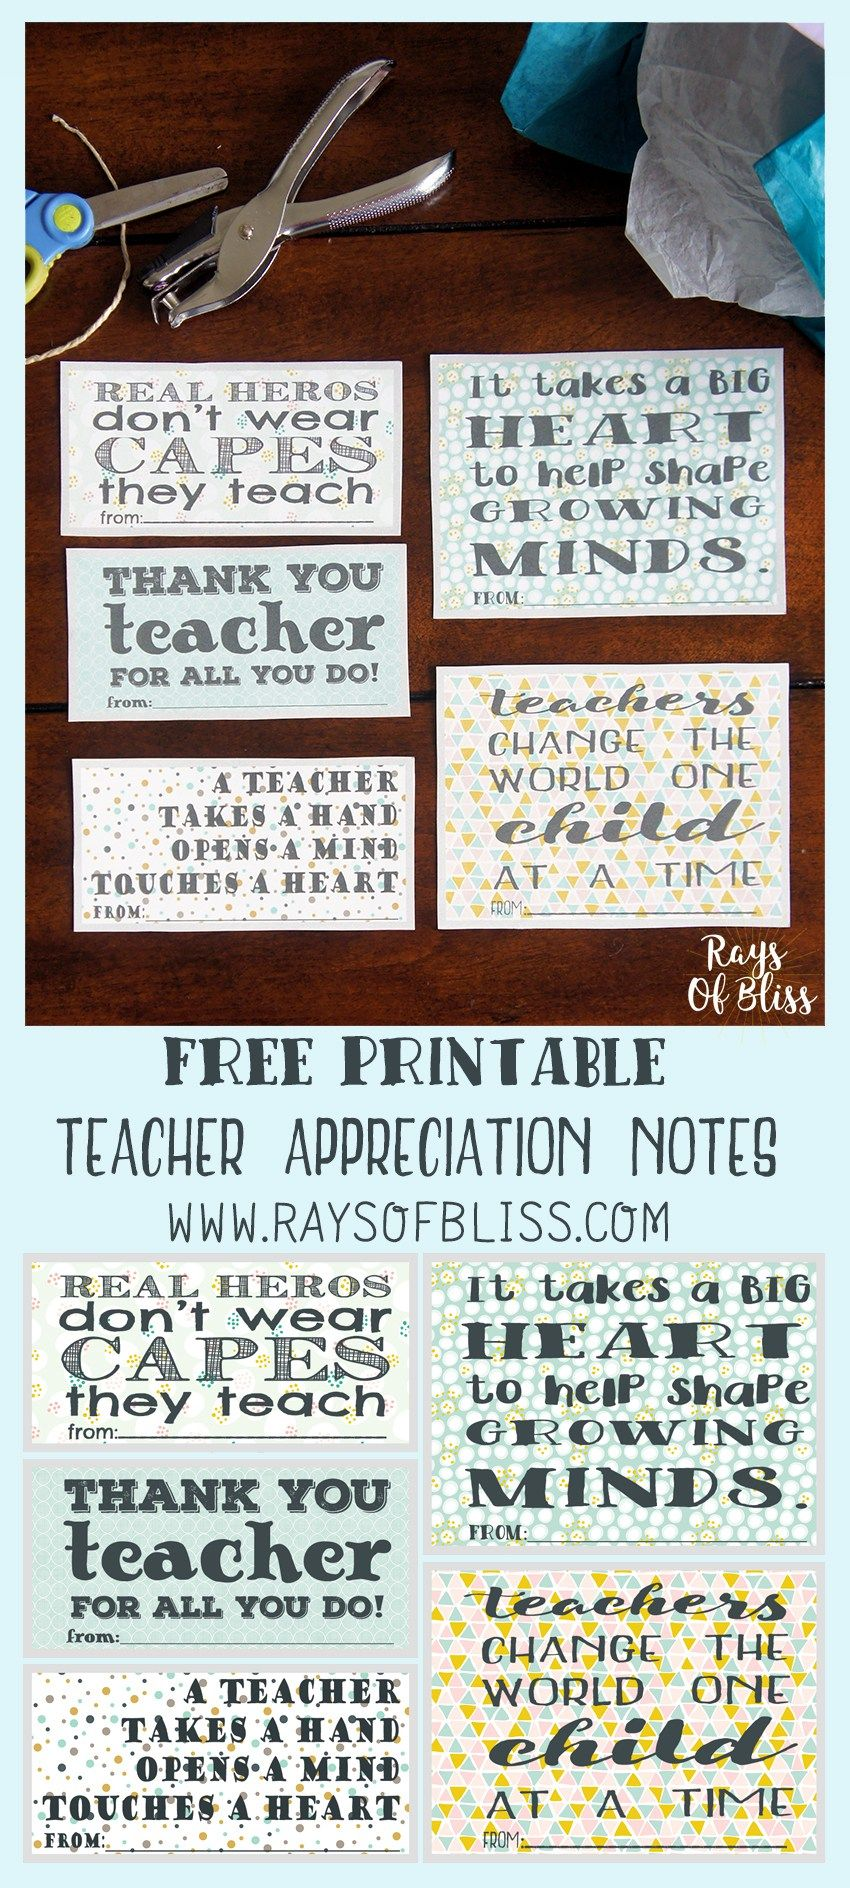 Teacher appreciation notes free printable set of 5 perfect for free printable set of 5 teacher appreciation notes perfect to give a little note or use as a gift tag for teacher appreciation week negle Gallery